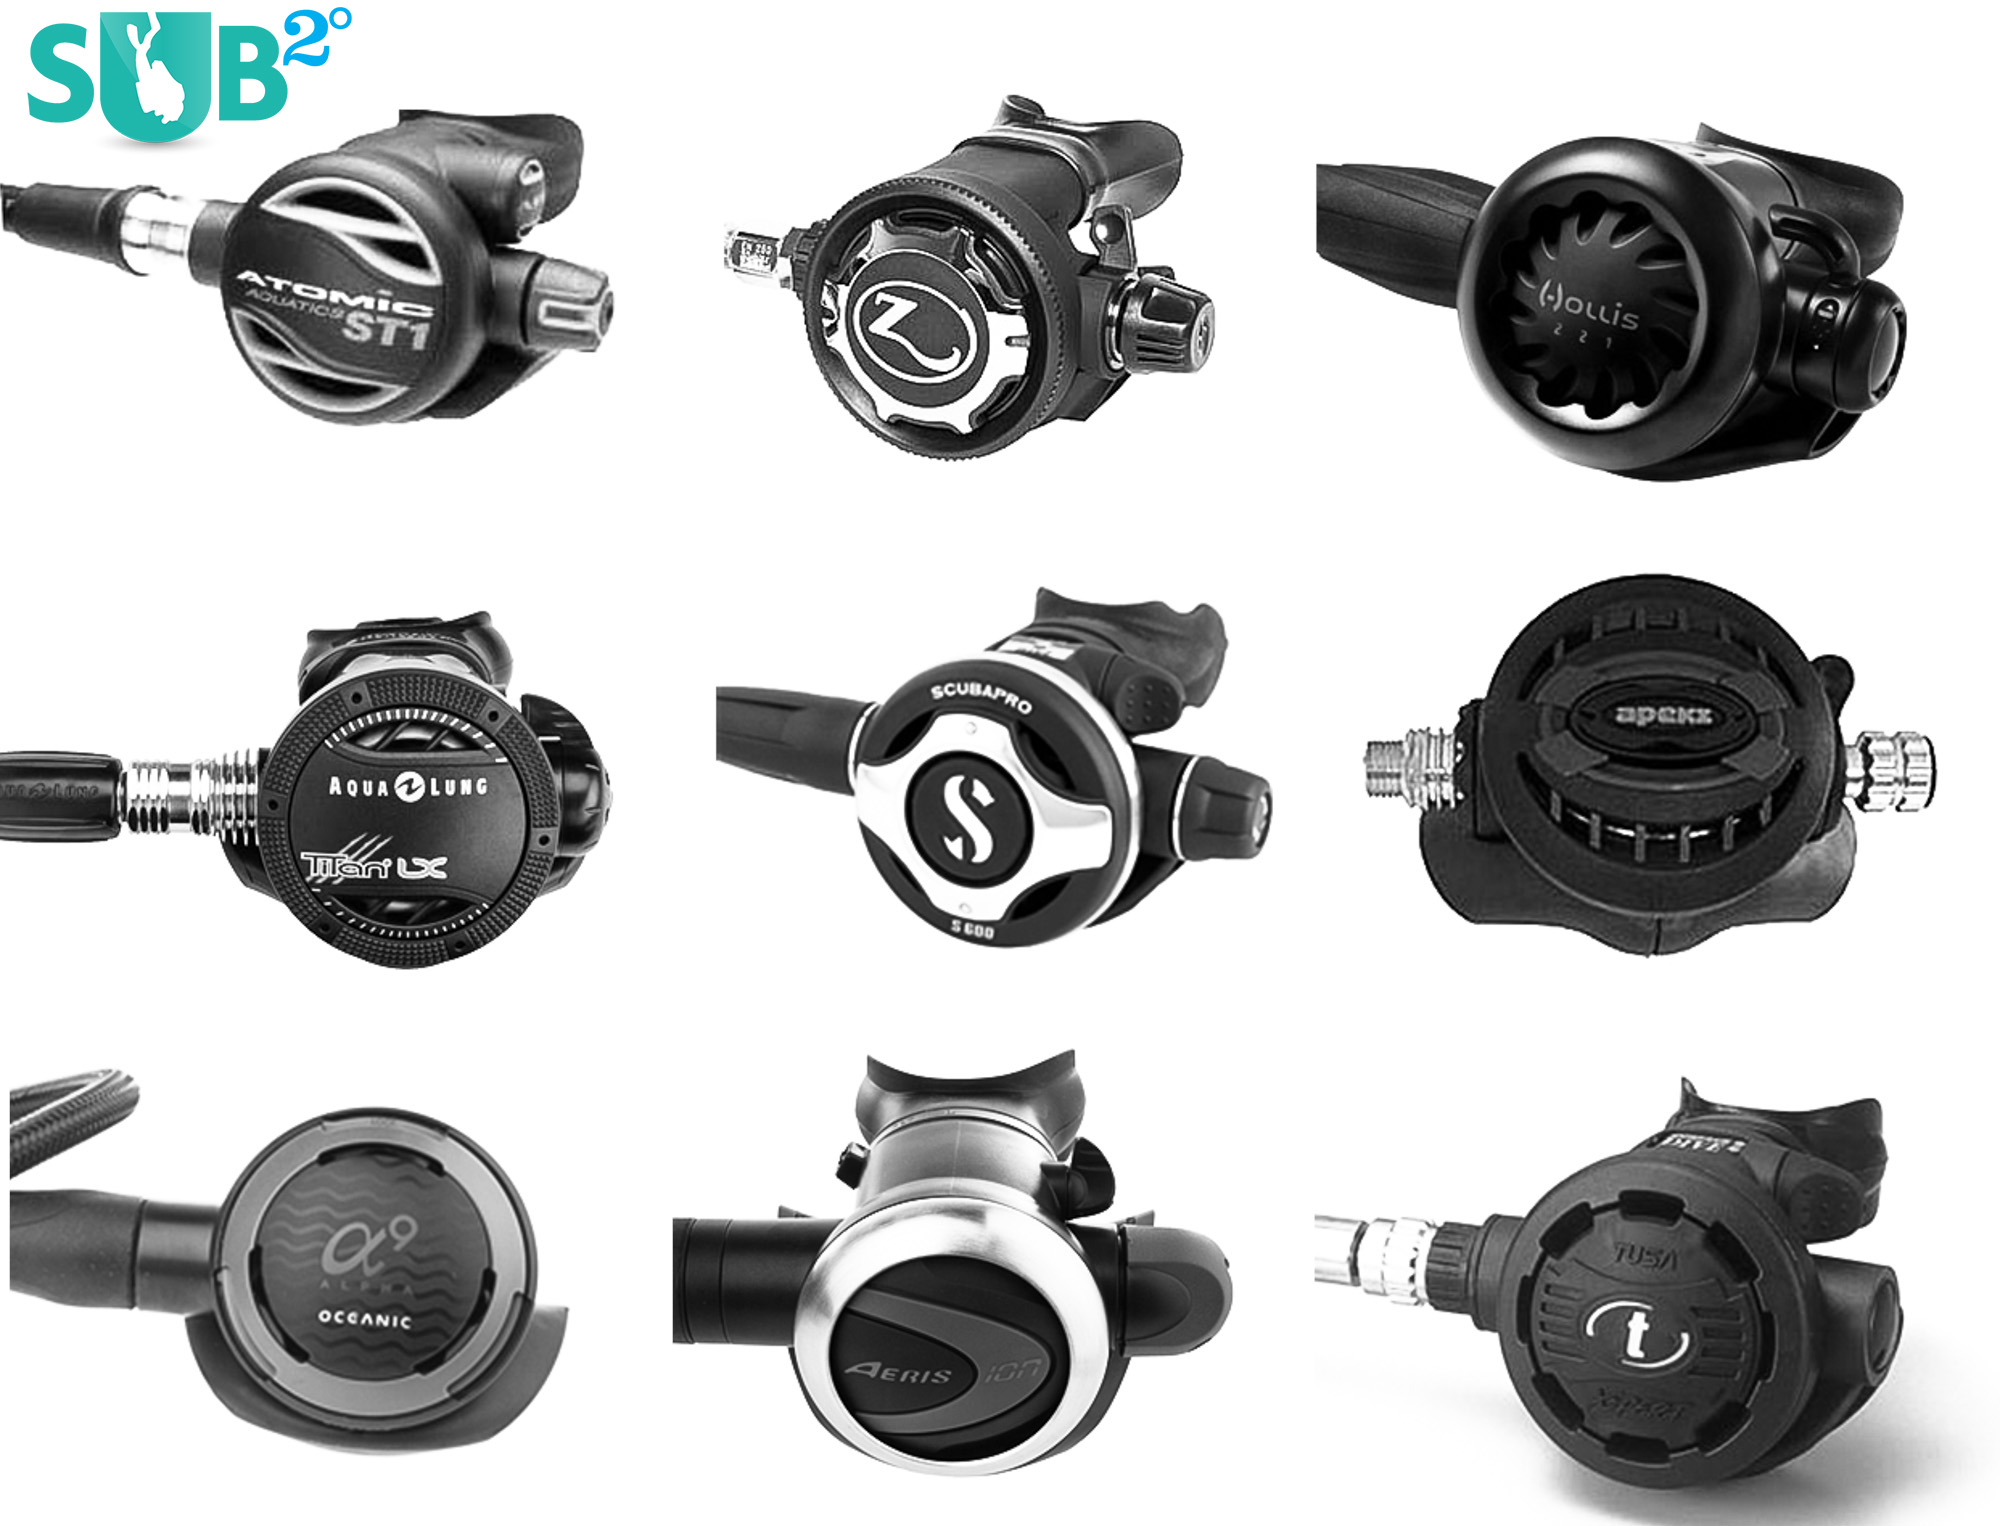 Just some of the many second stages available.  Product photos from www.leisurepro.com.